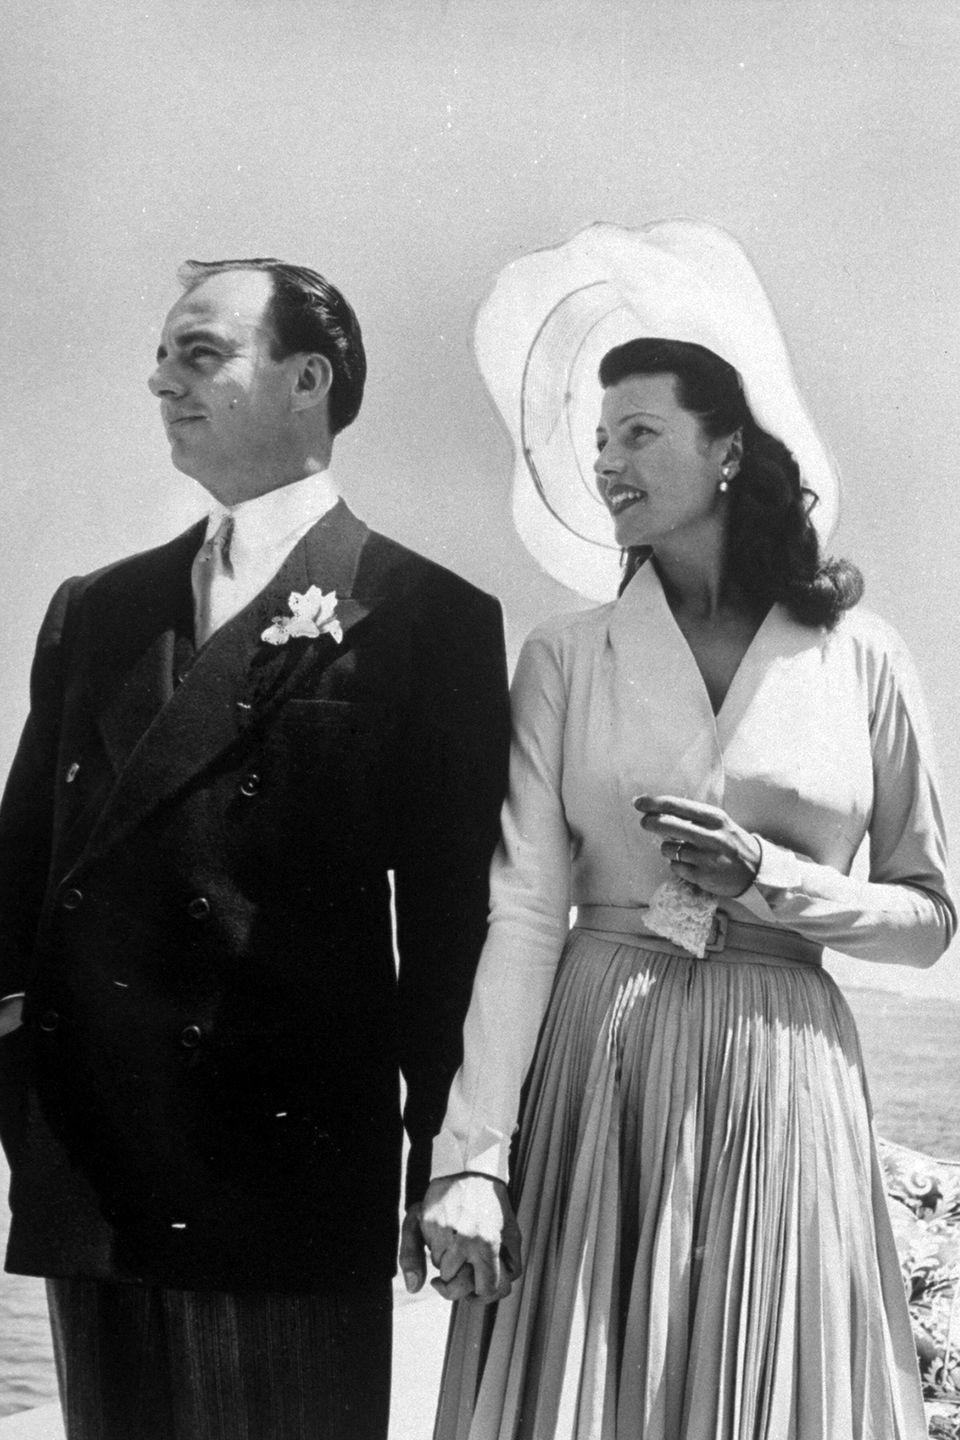 <p>Even though he had a reputation as a playboy, Prince Aly Khan set his sights on Hollywood actress Rita Hayworth shortly after her divorce to director Orson Welles. After being introduced while vacationing on the French Rivera, Hayworth and Aly Khan returned to France in 1949 and were married in a particularly lavish ceremony at the l'Horizon. </p>